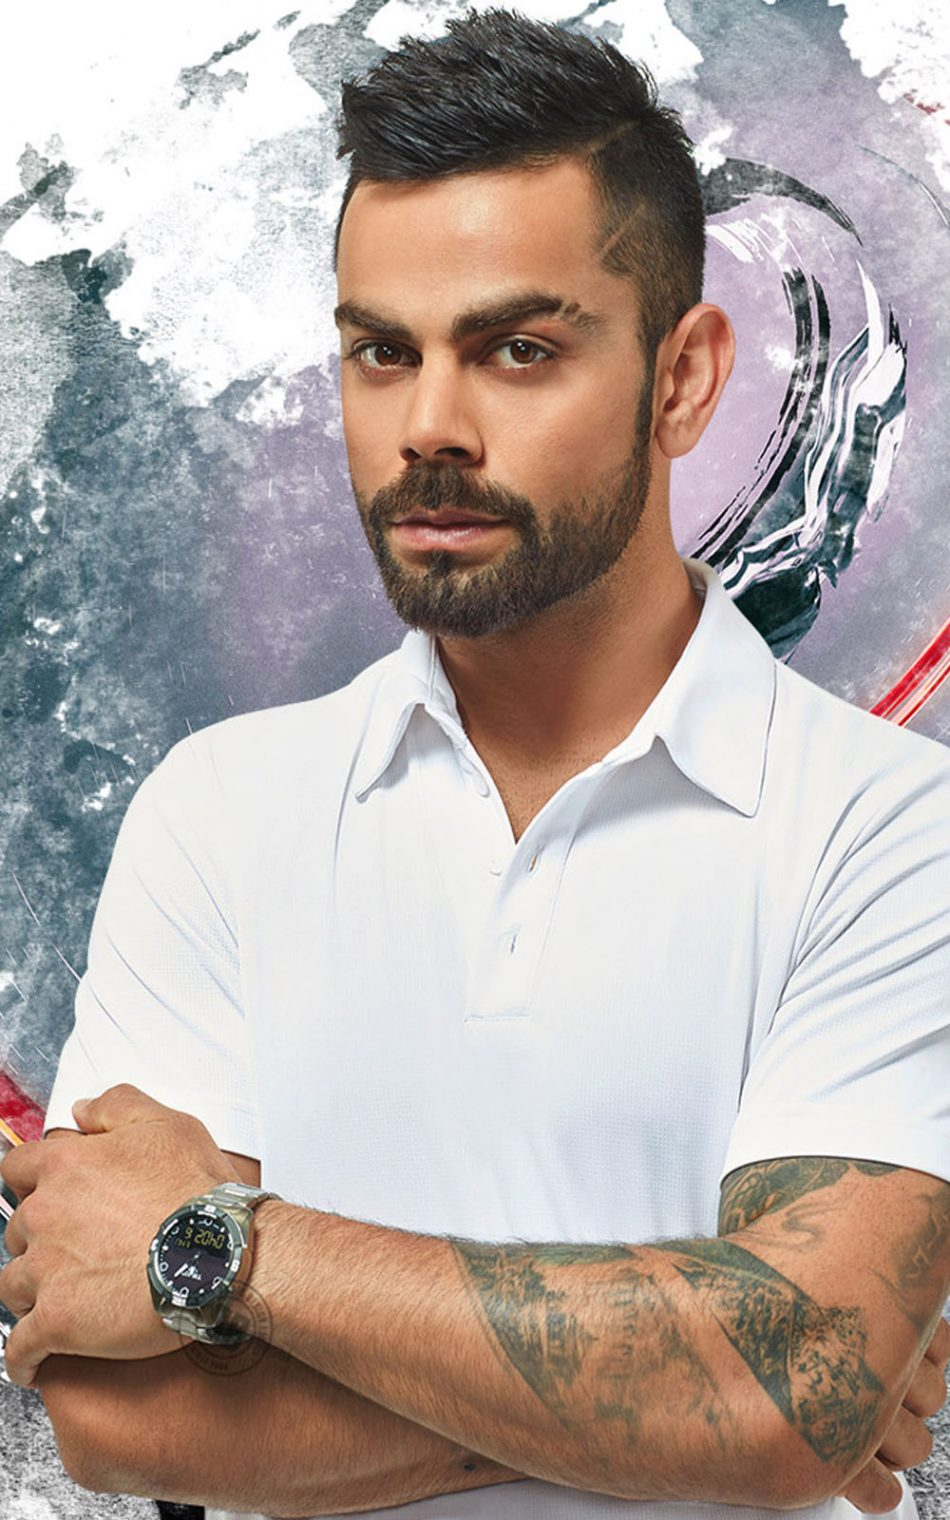 Shoot For The Moon Quote Wallpaper Virat Kohli Photoshoot 2018 Download Free 100 Pure Hd